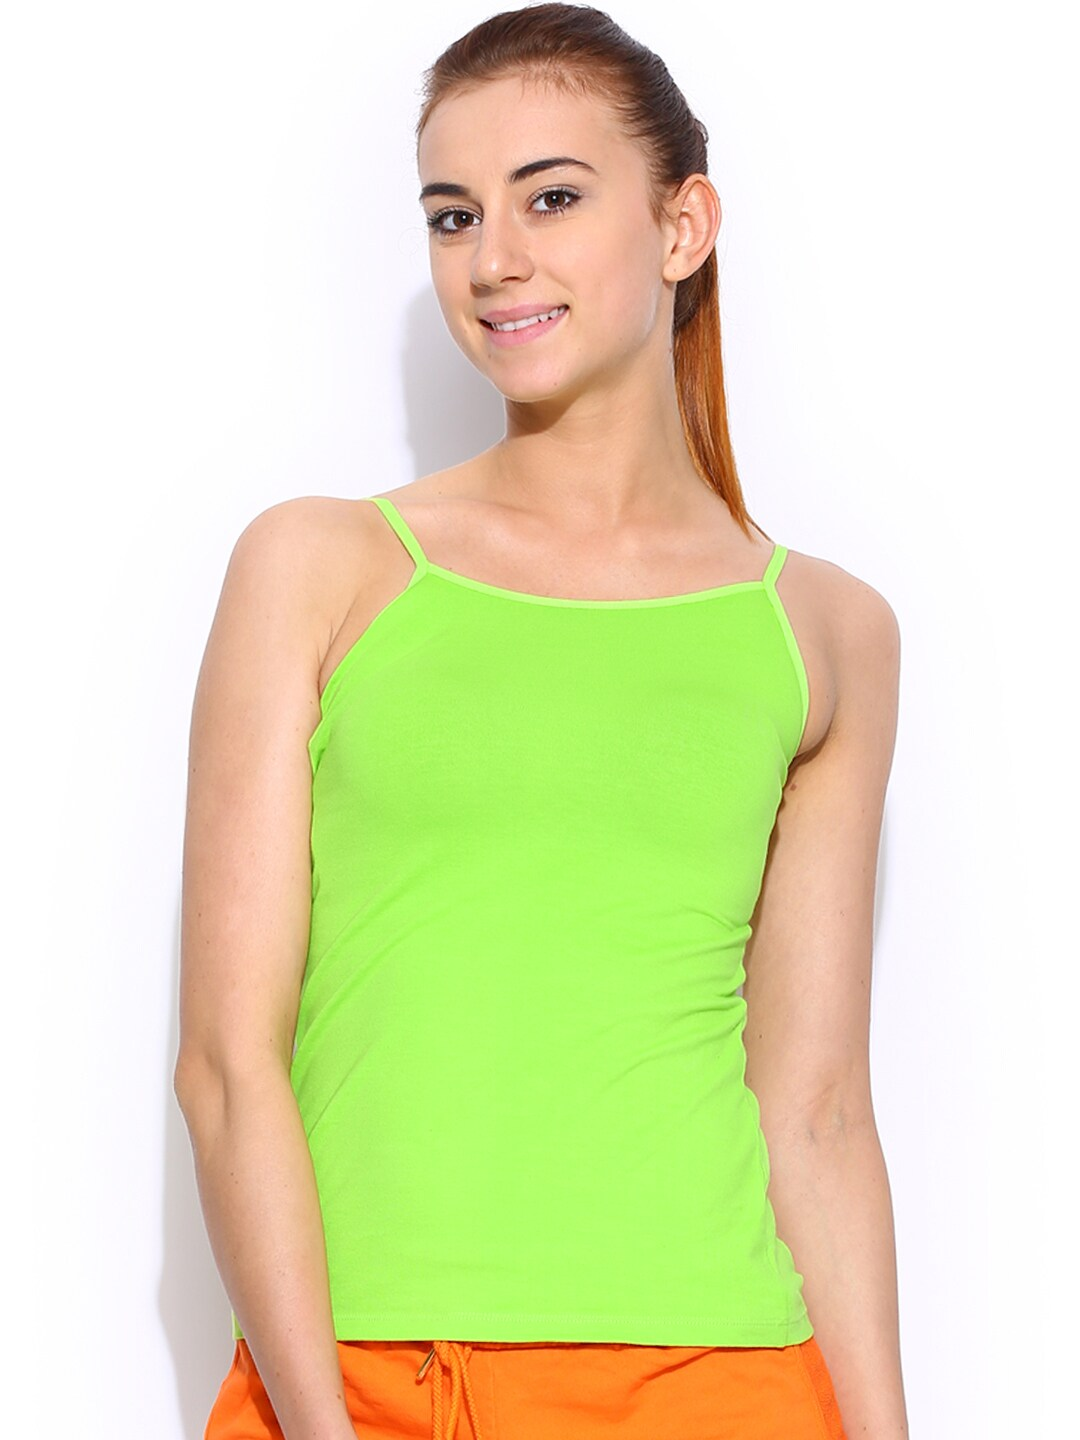 Restless Lime Green Spaghetti Top